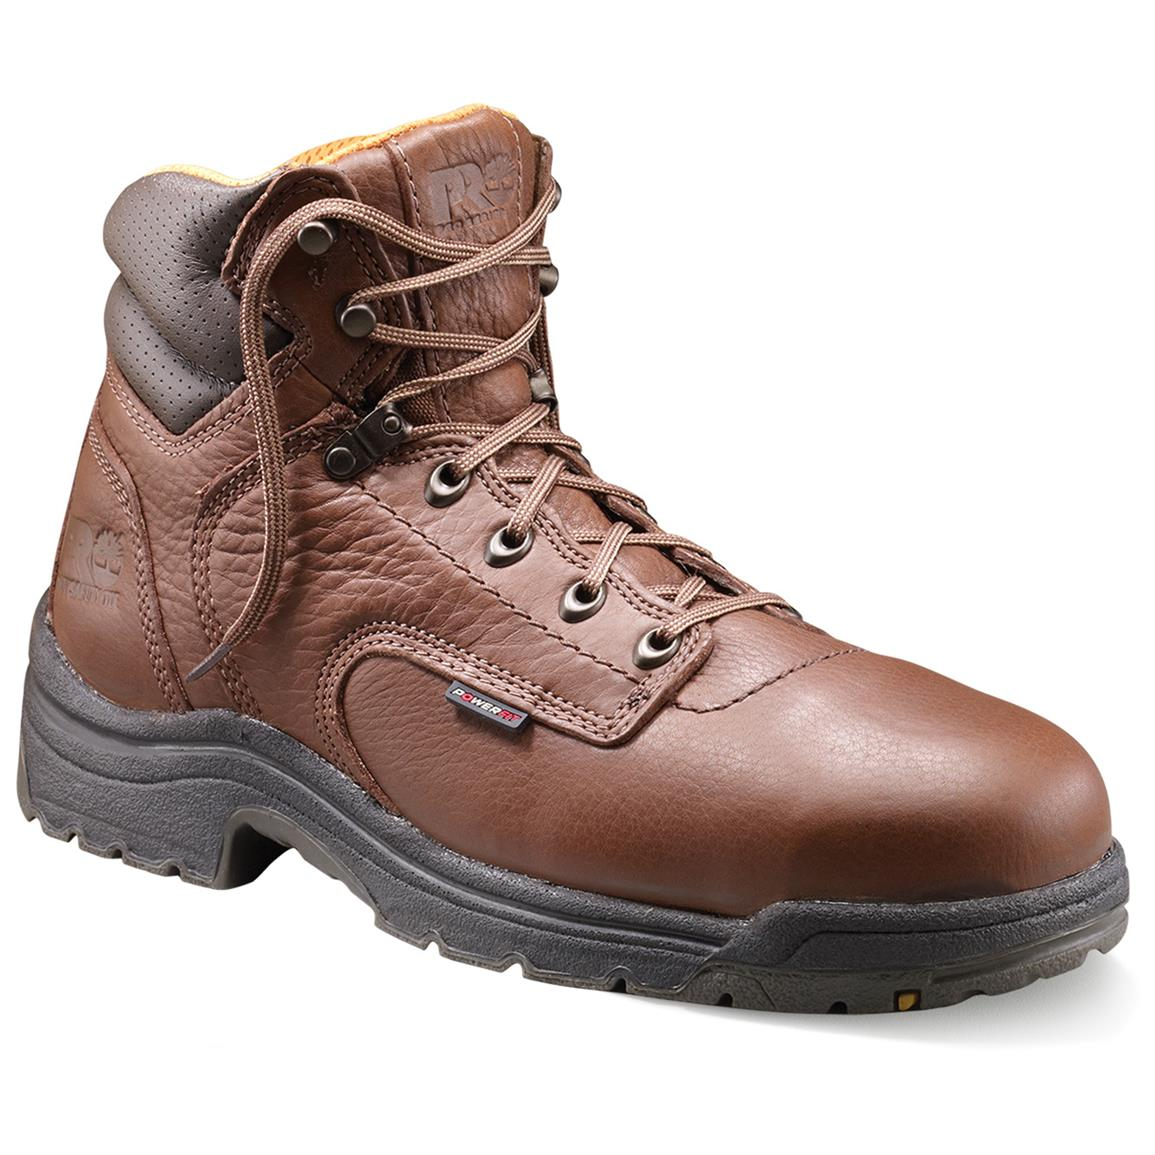 "Men's 6"" Timberland Pro® TiTAN Safety Toe Boots, Coffee"